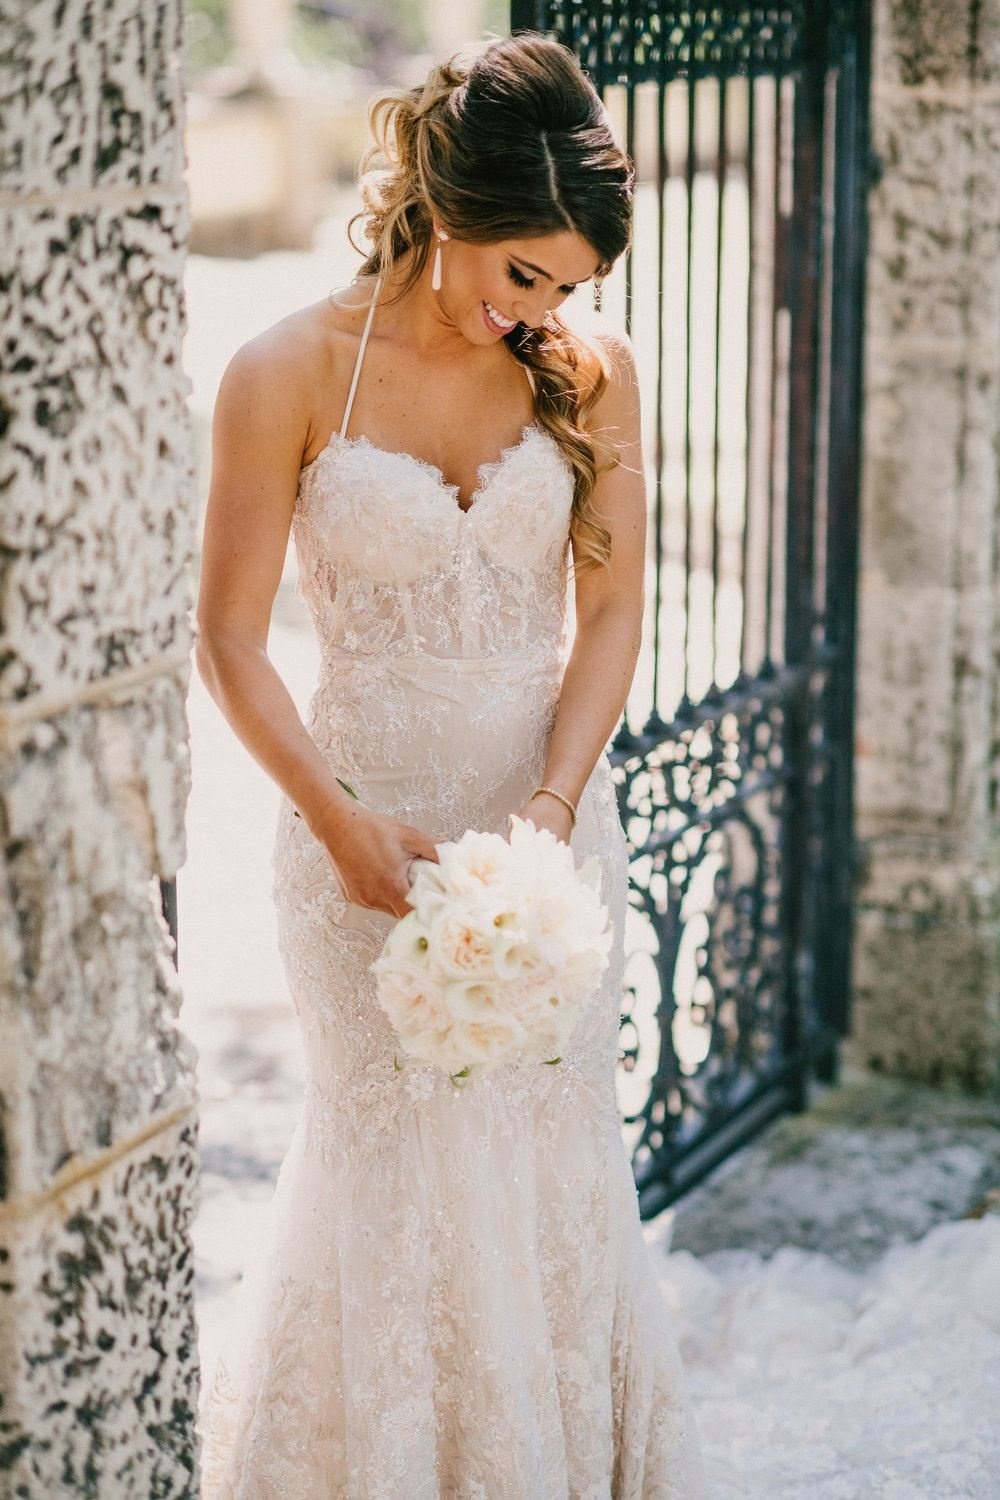 https://0201.nccdn.net/4_2/000/000/038/2d3/industrial-wedding-vibes-miami-nuptials-27-1000x1500.jpg